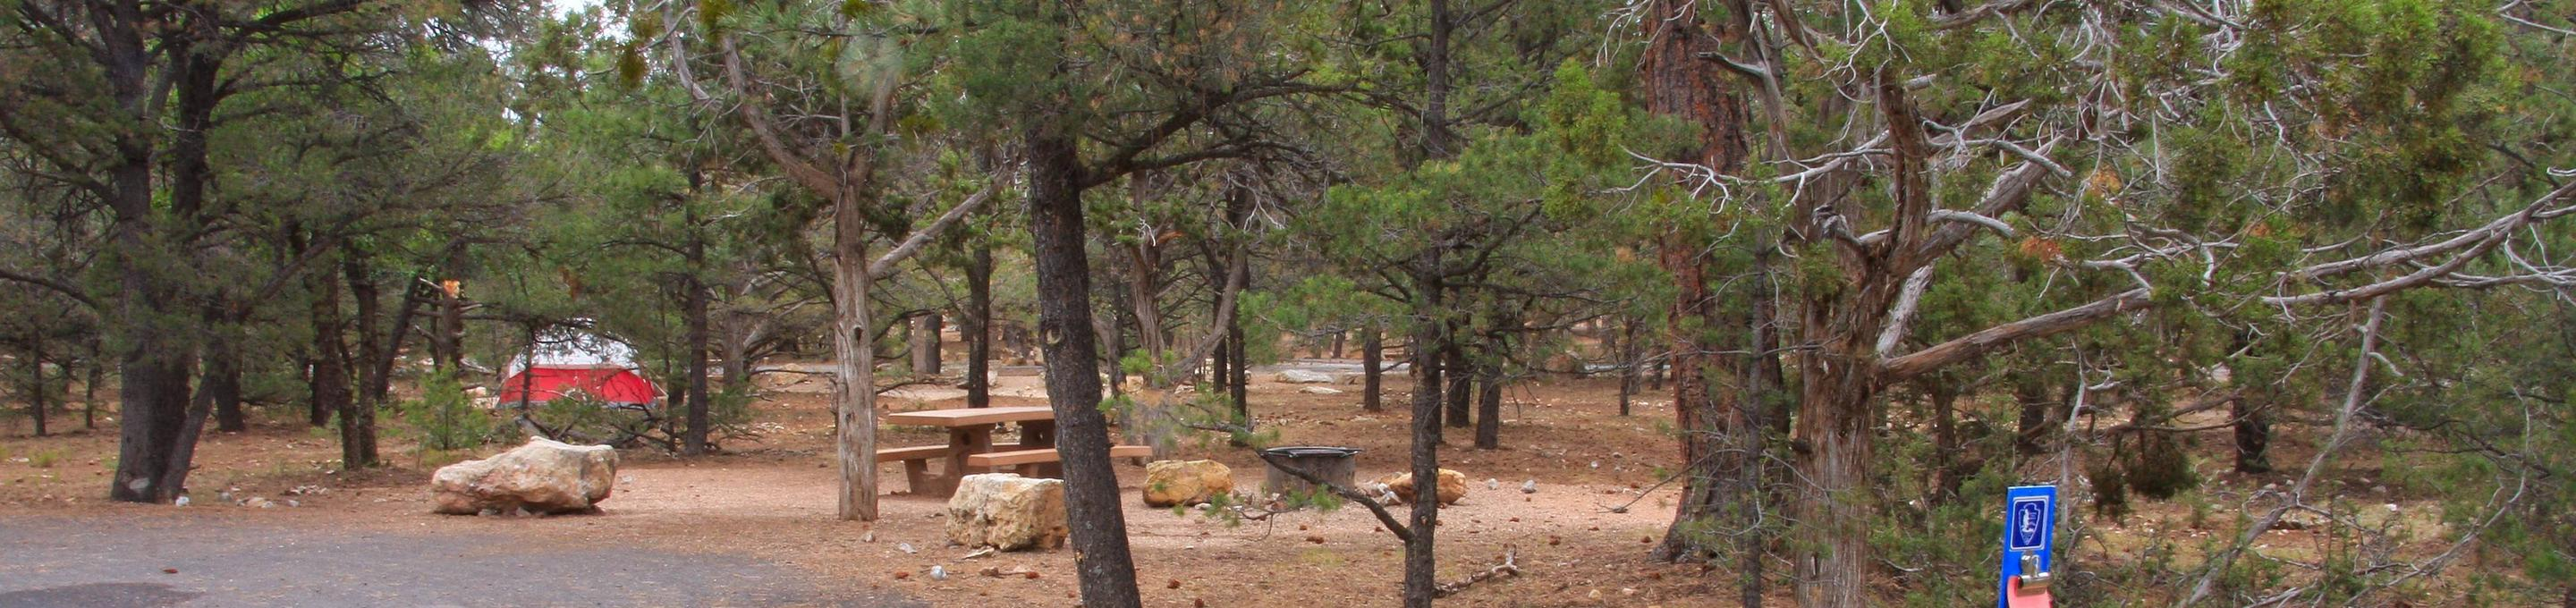 Picnic table, fire pit, and parking spot, Mather CampgroundPicnic table, fire pit, and parking spot for Pine Loop 278, Mather Campground